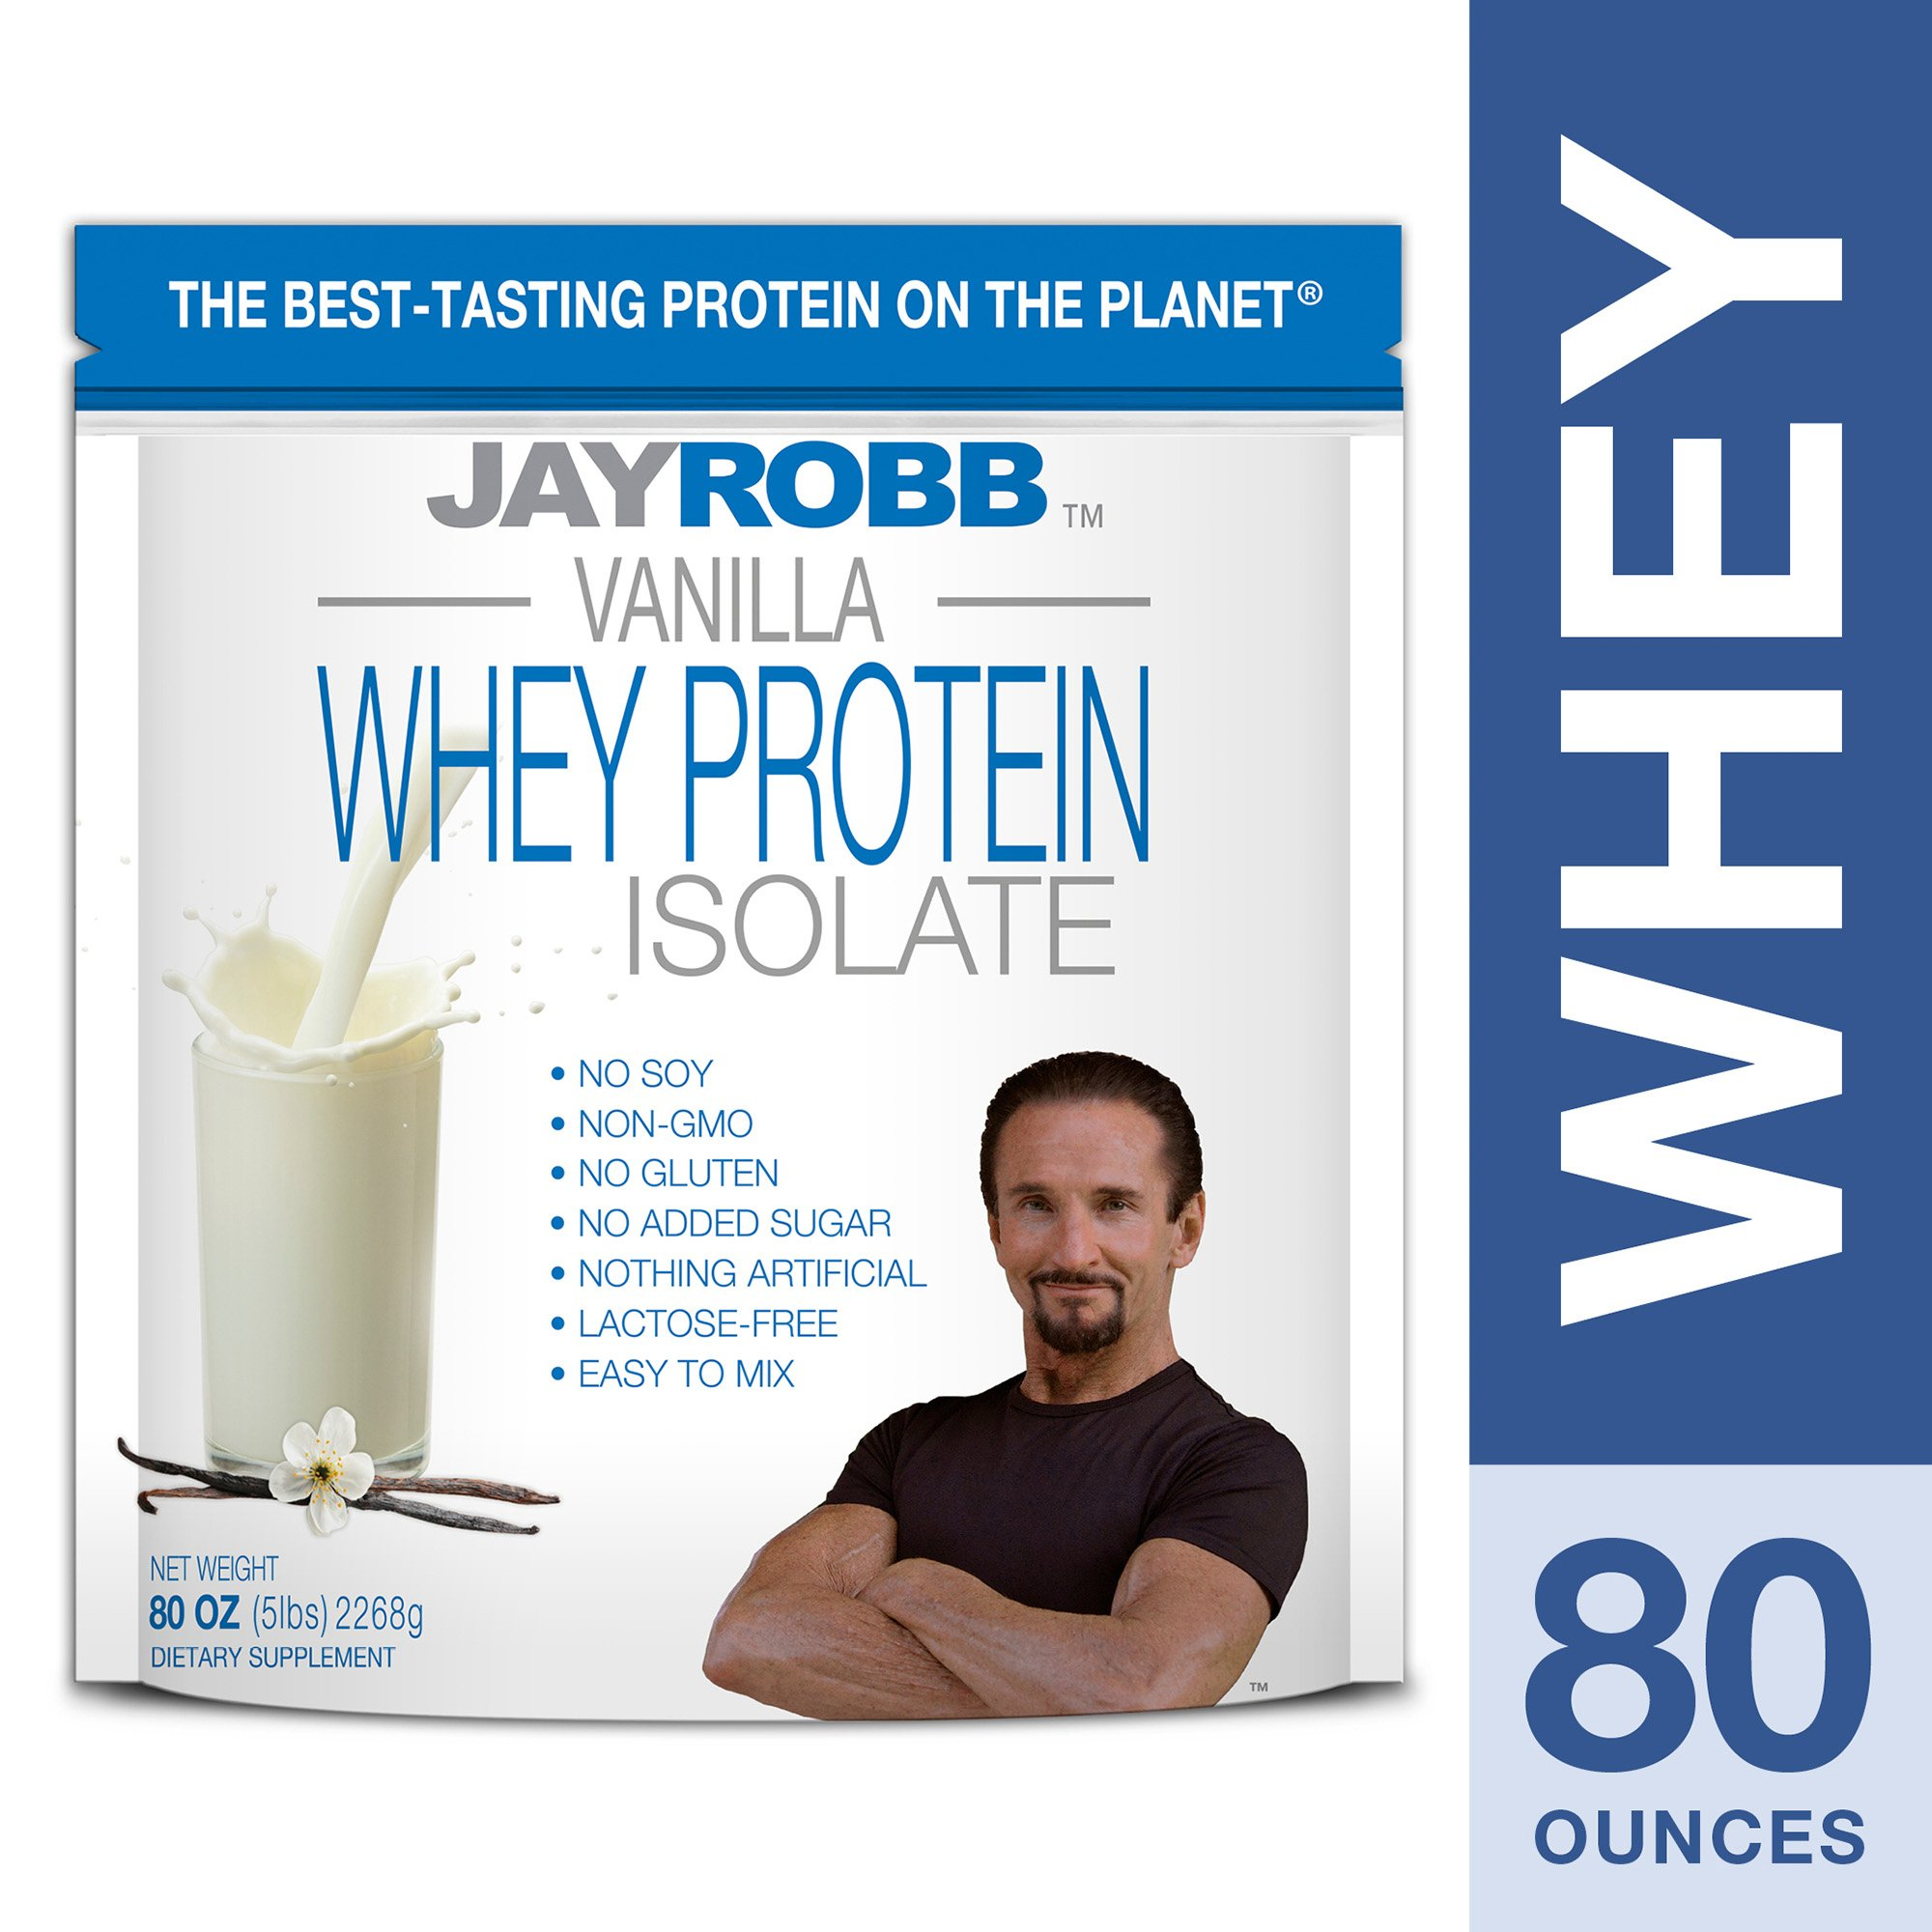 Jay Robb - Grass-Fed Whey Protein Isolate Powder, Outrageously Delicious, Vanilla, 76 Servings (80 oz) by Jay Robb